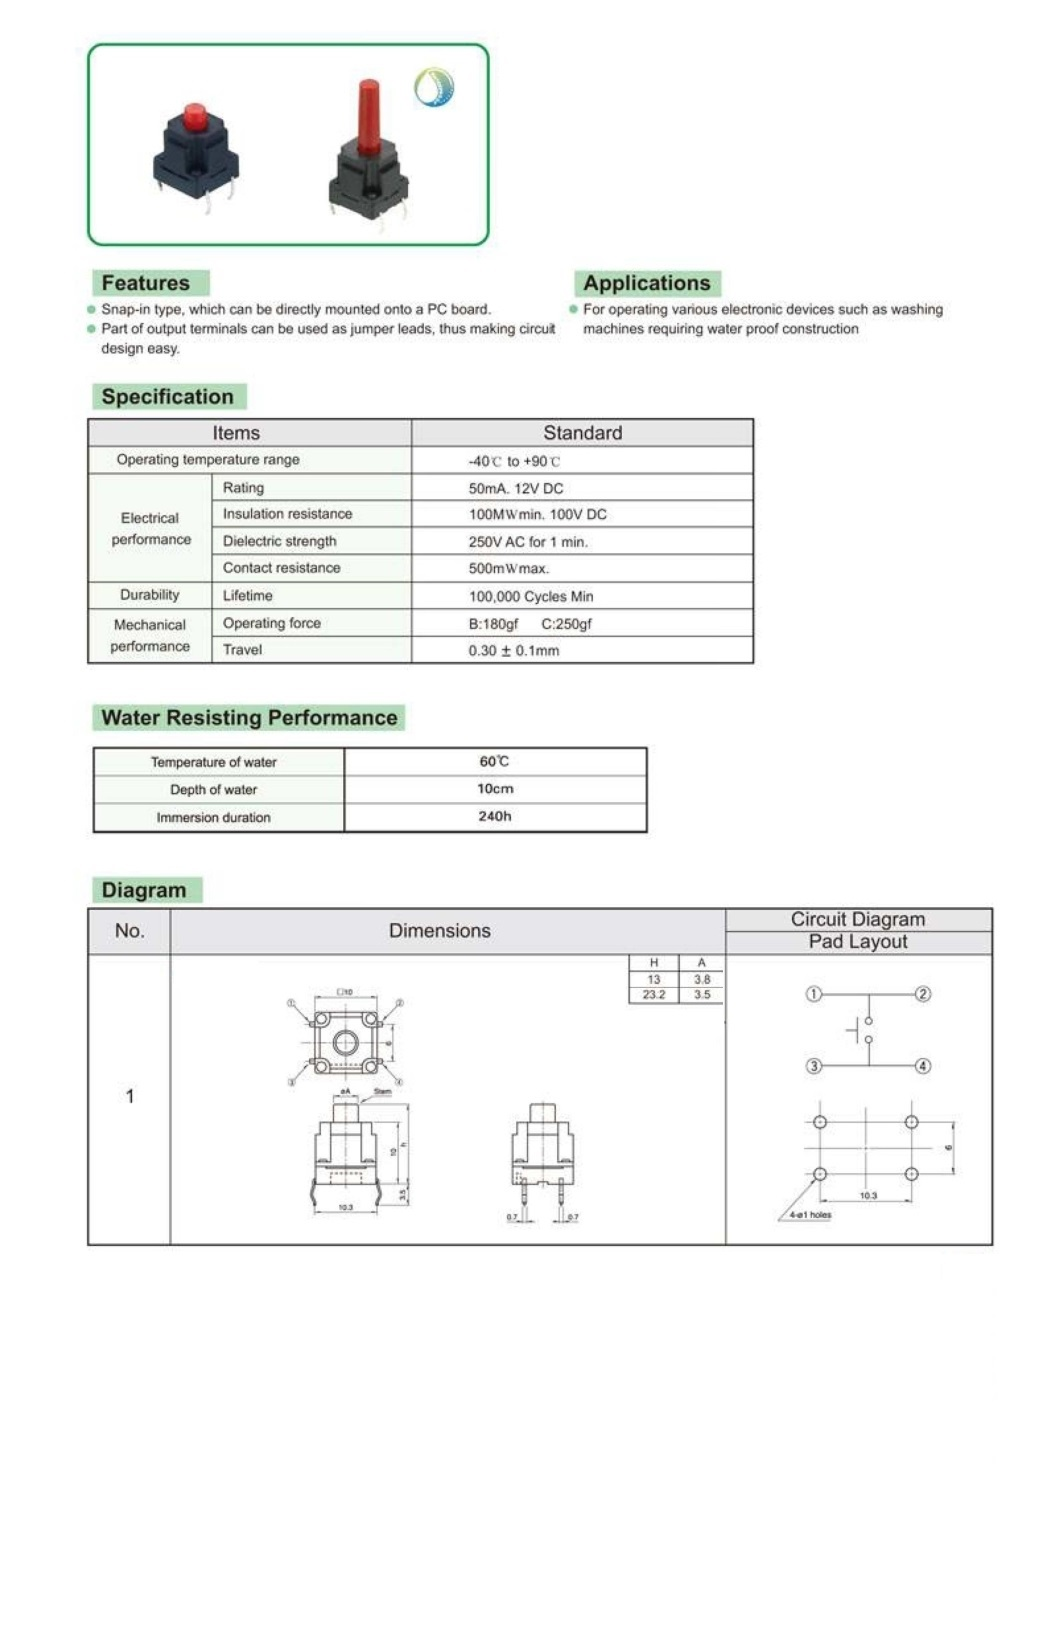 Switches And Led Indicators Tact 086076 Micros Leds Temperature Indicator Circuit Diagram Showing 21 30 Z 54 Items